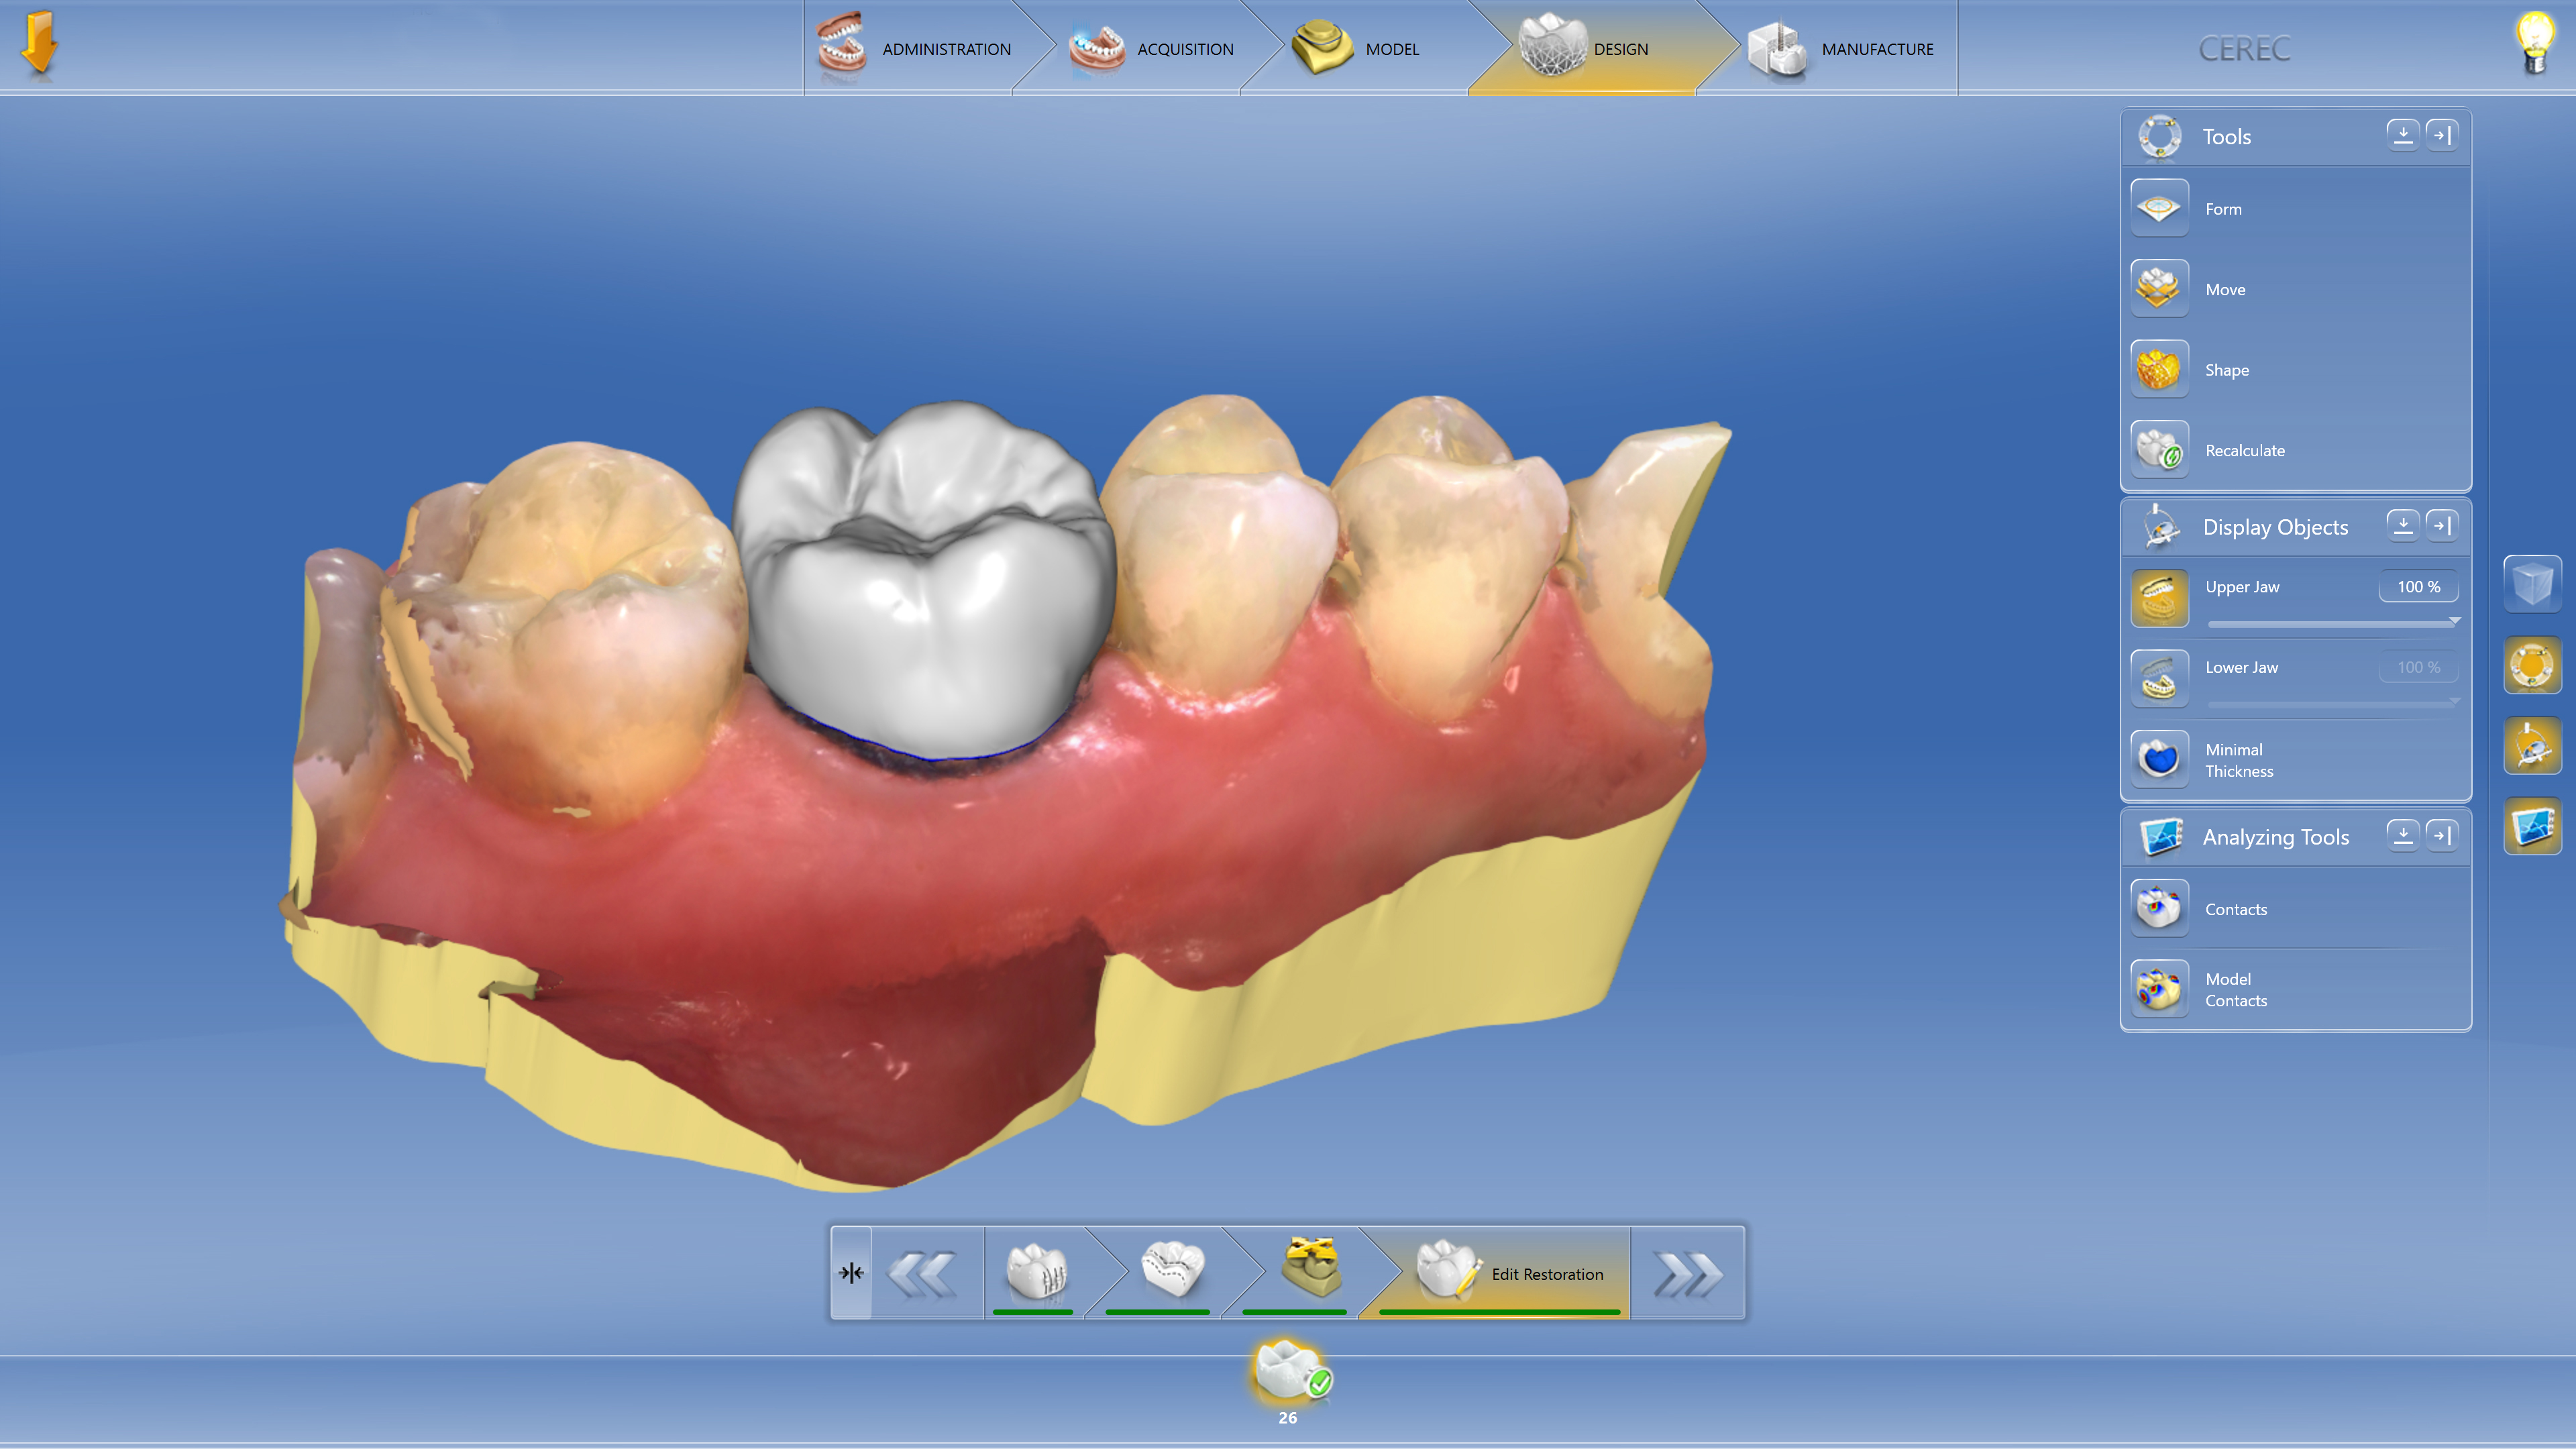 Cerec Sw 45 Intuitive Work Using Intelligent Software To -1214